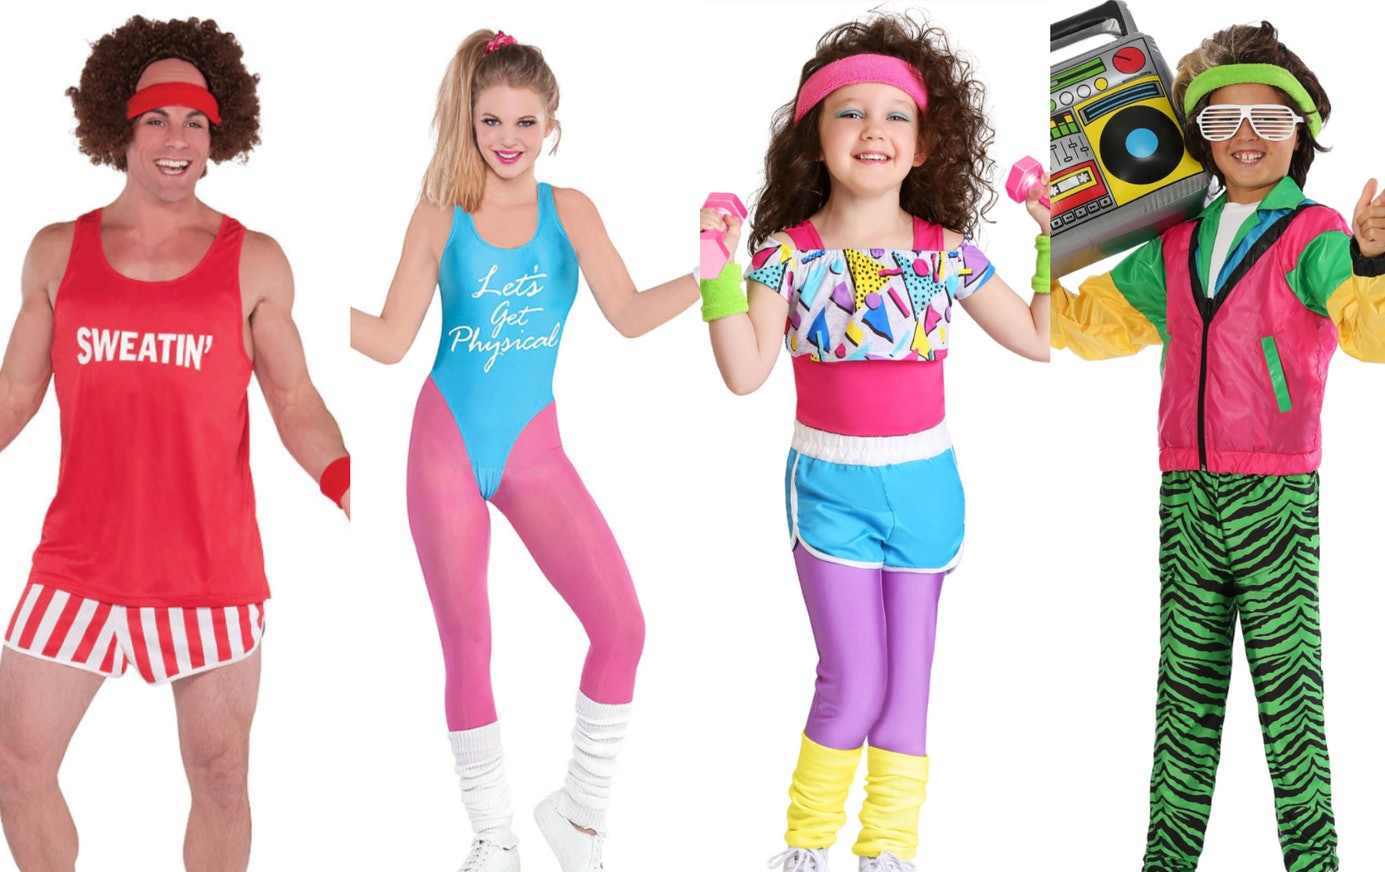 10 Family Halloween 2019 Costume Ideas Everyone Can Agree On